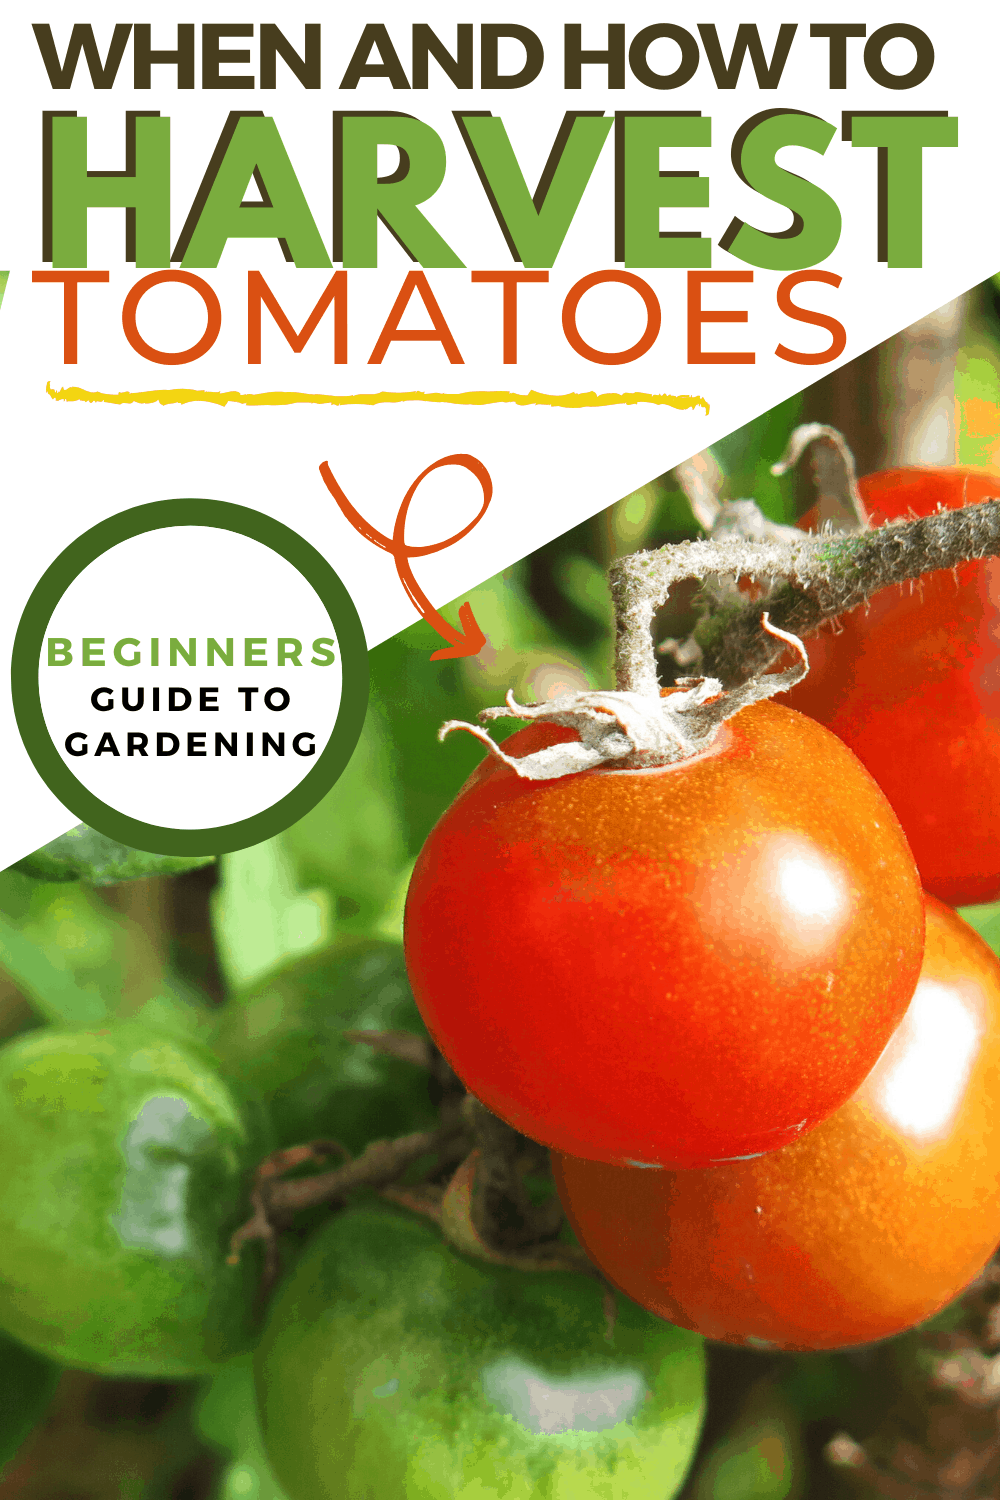 You have planted your tomatoes now it is time to harvest them. As a new gardener, there are important things you should know about harvesting tomatoes. #harvesting #gardening #tomatoes #Gardeningtips #harvest via @mystayathome